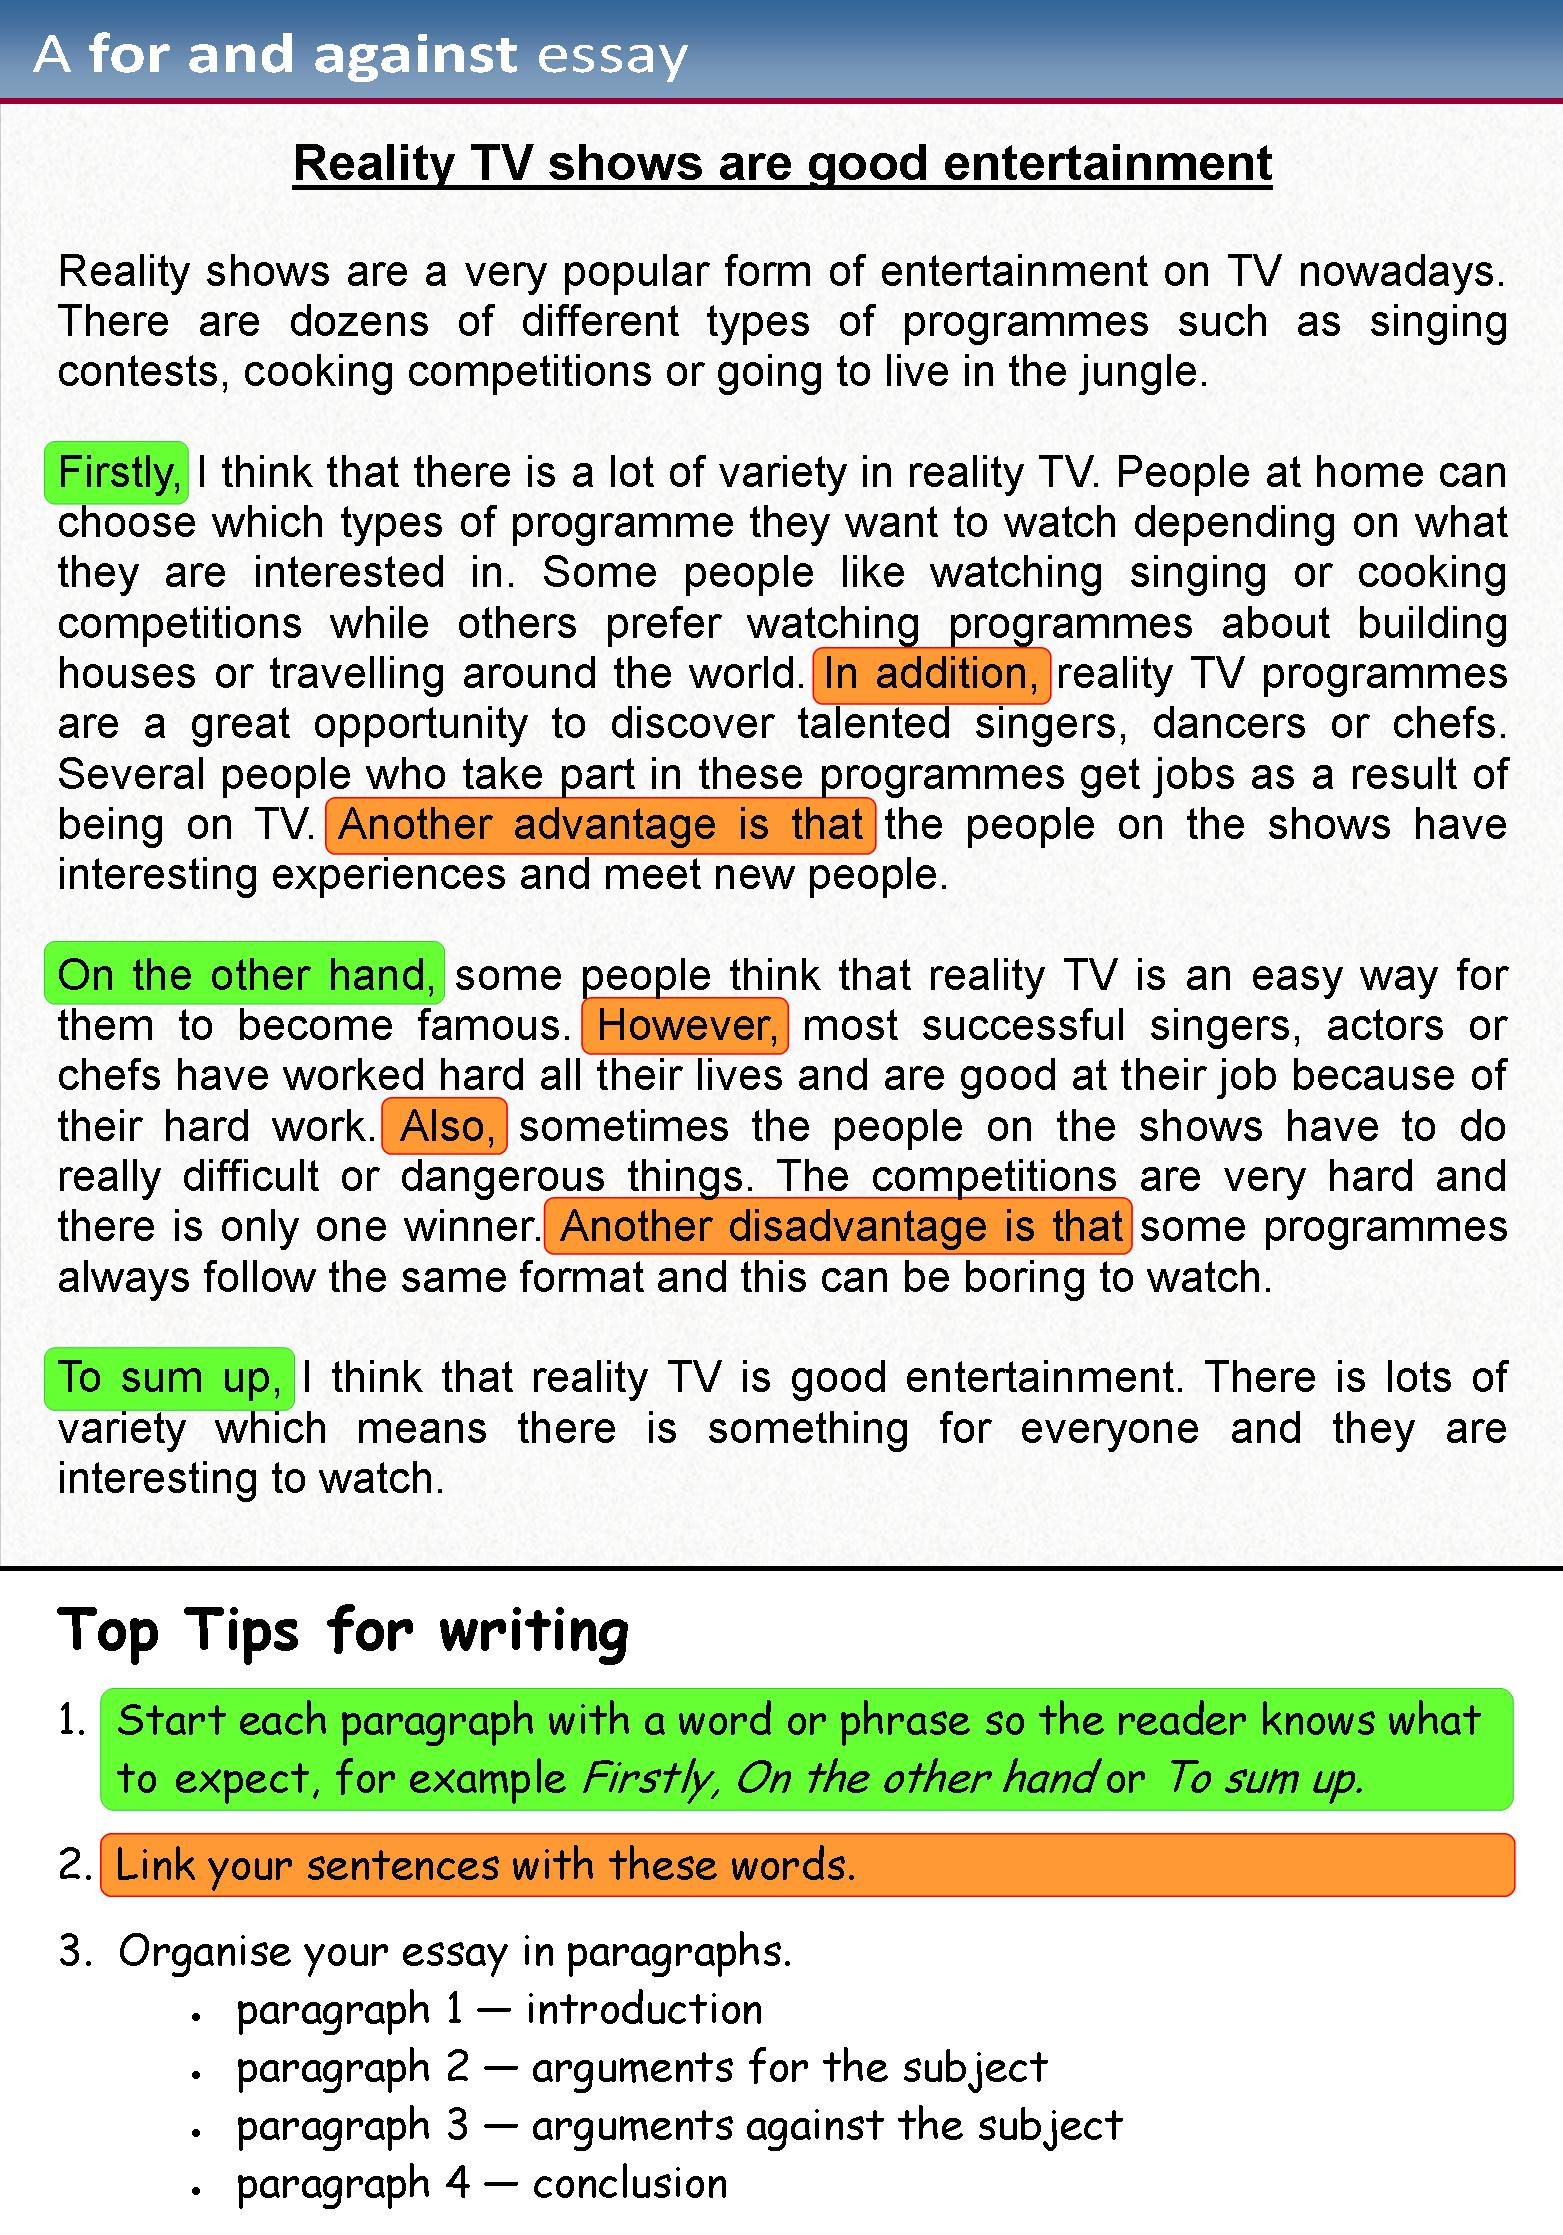 027 How Many Sentences Are In Essay For Against 1 Best A Much Make Paragraph An 250 Word Full